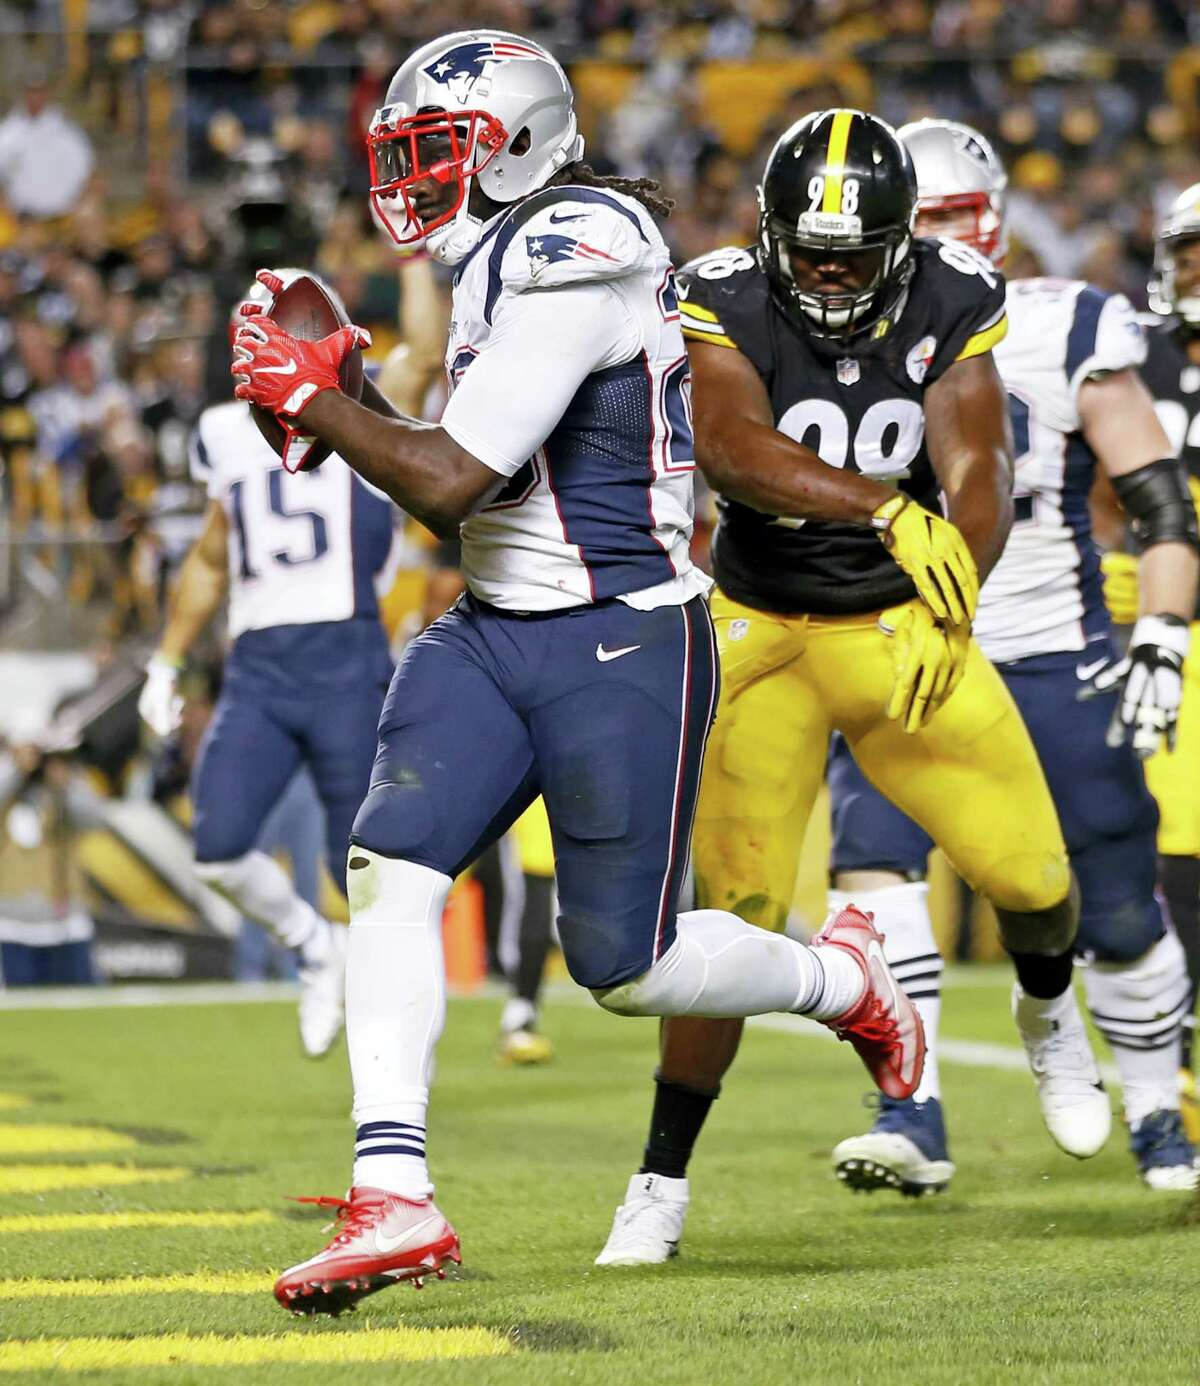 Patriots running back LeGarrette Blount (29) gets into the end zone.